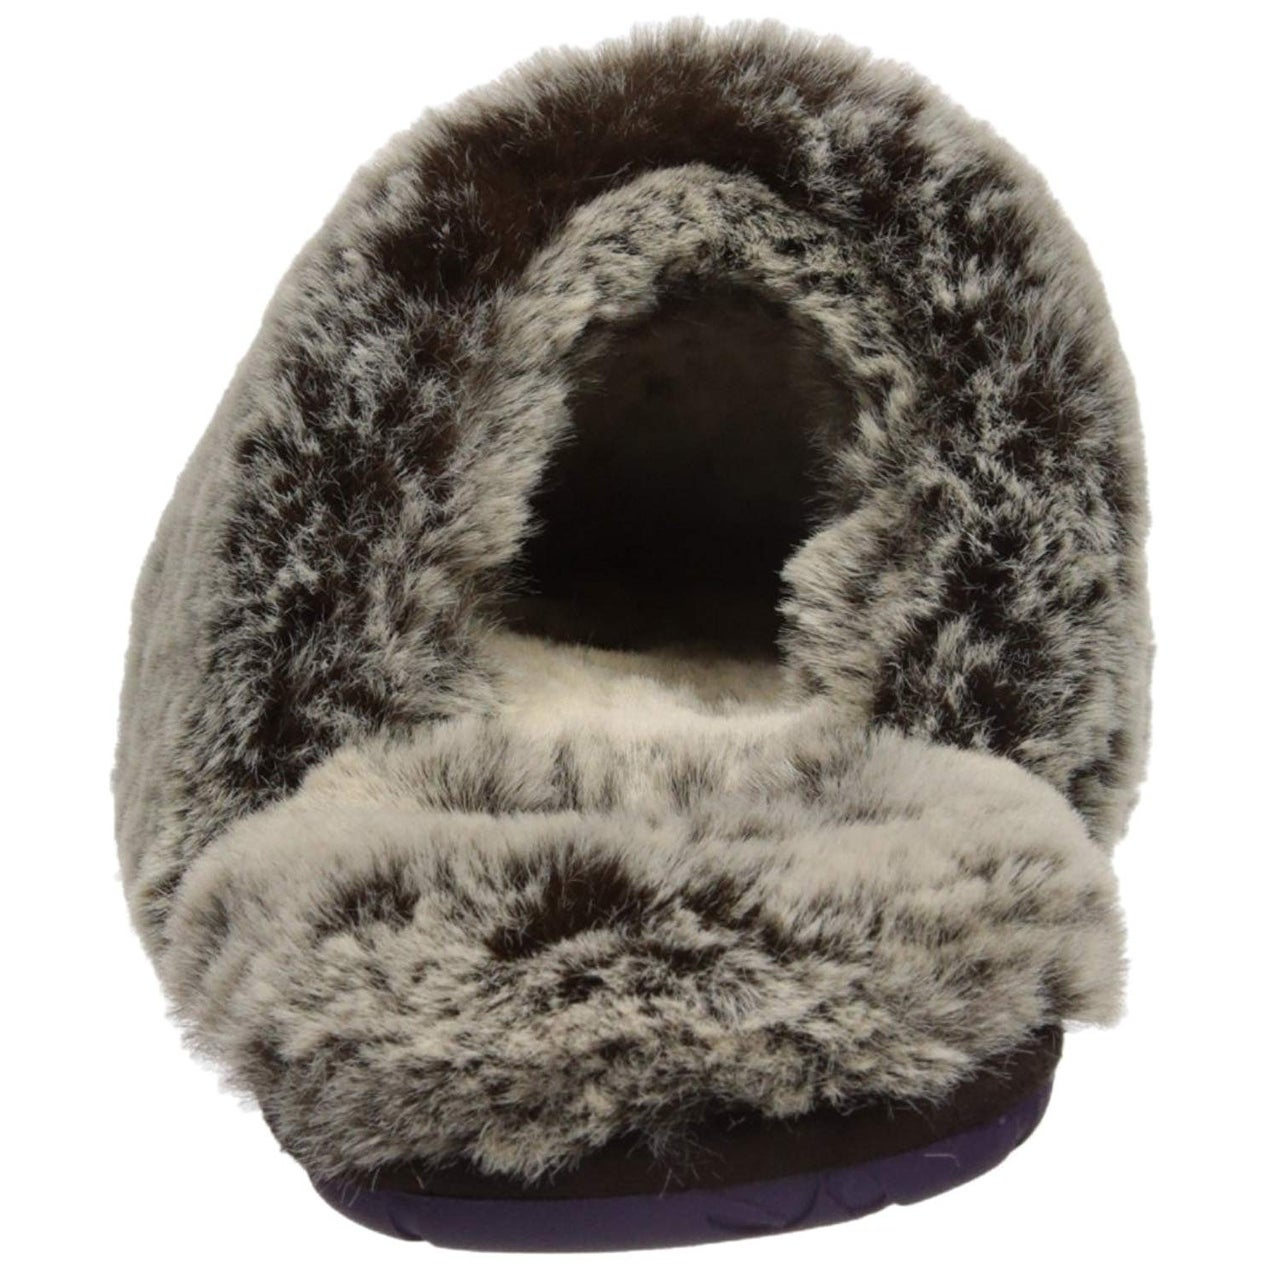 34838bd8735f04 Shop Ted Baker Men s Nnyah Slipper - Grey - 7 - Free Shipping Today -  Overstock - 23591978